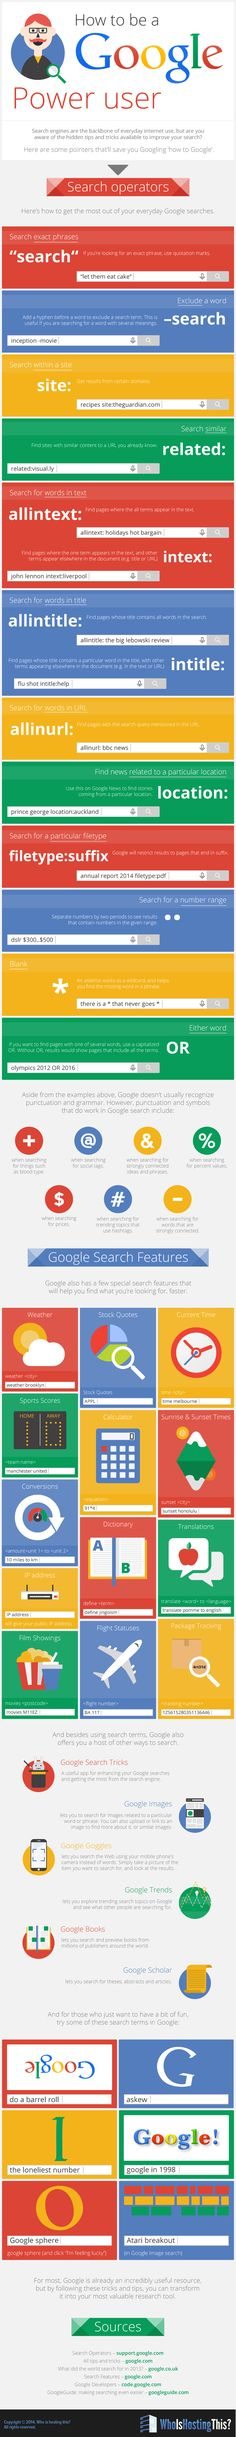 Google Like a Pro - Via Who Is Hosting This: The Blog